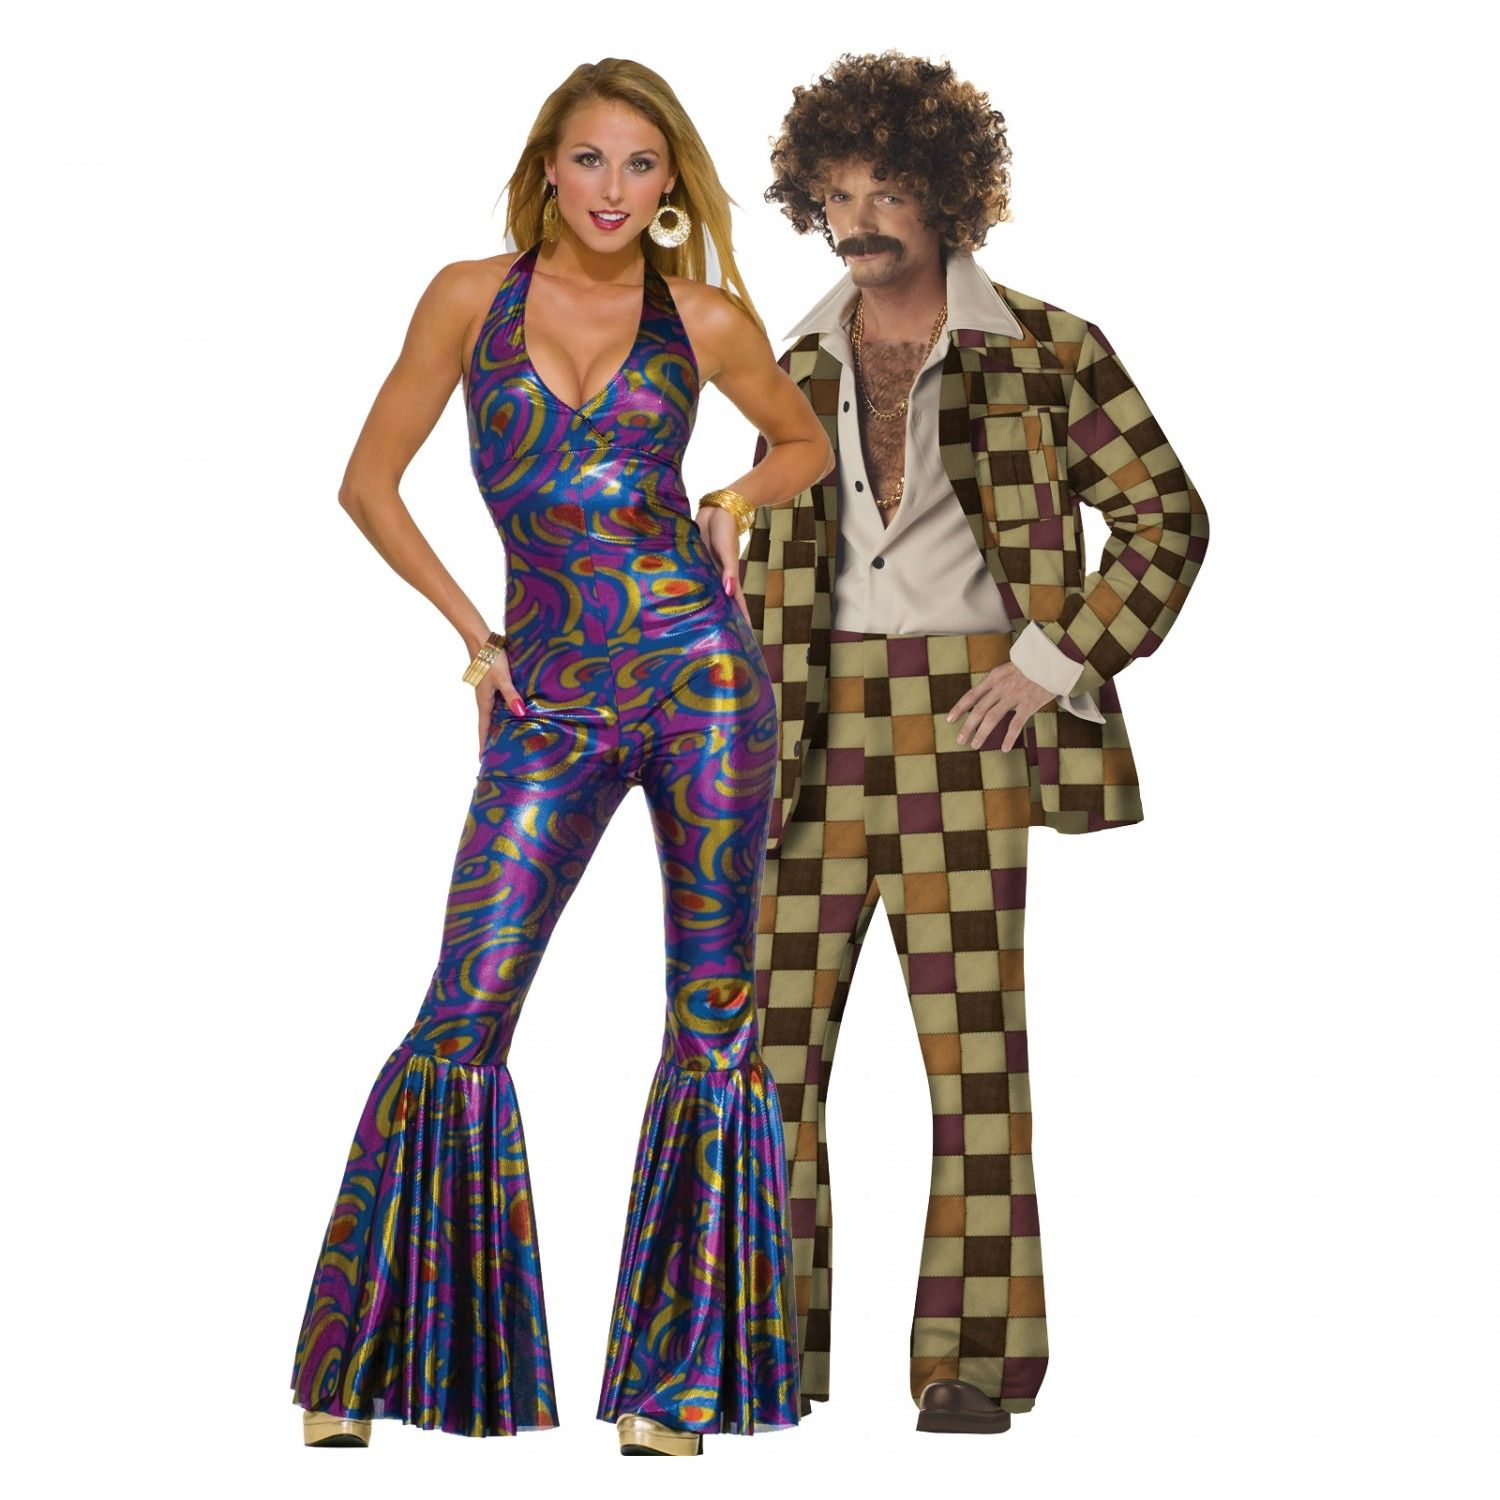 70 39 S Disco Fashion Google Search Party Pinterest Disco Fashion Discos And Costumes